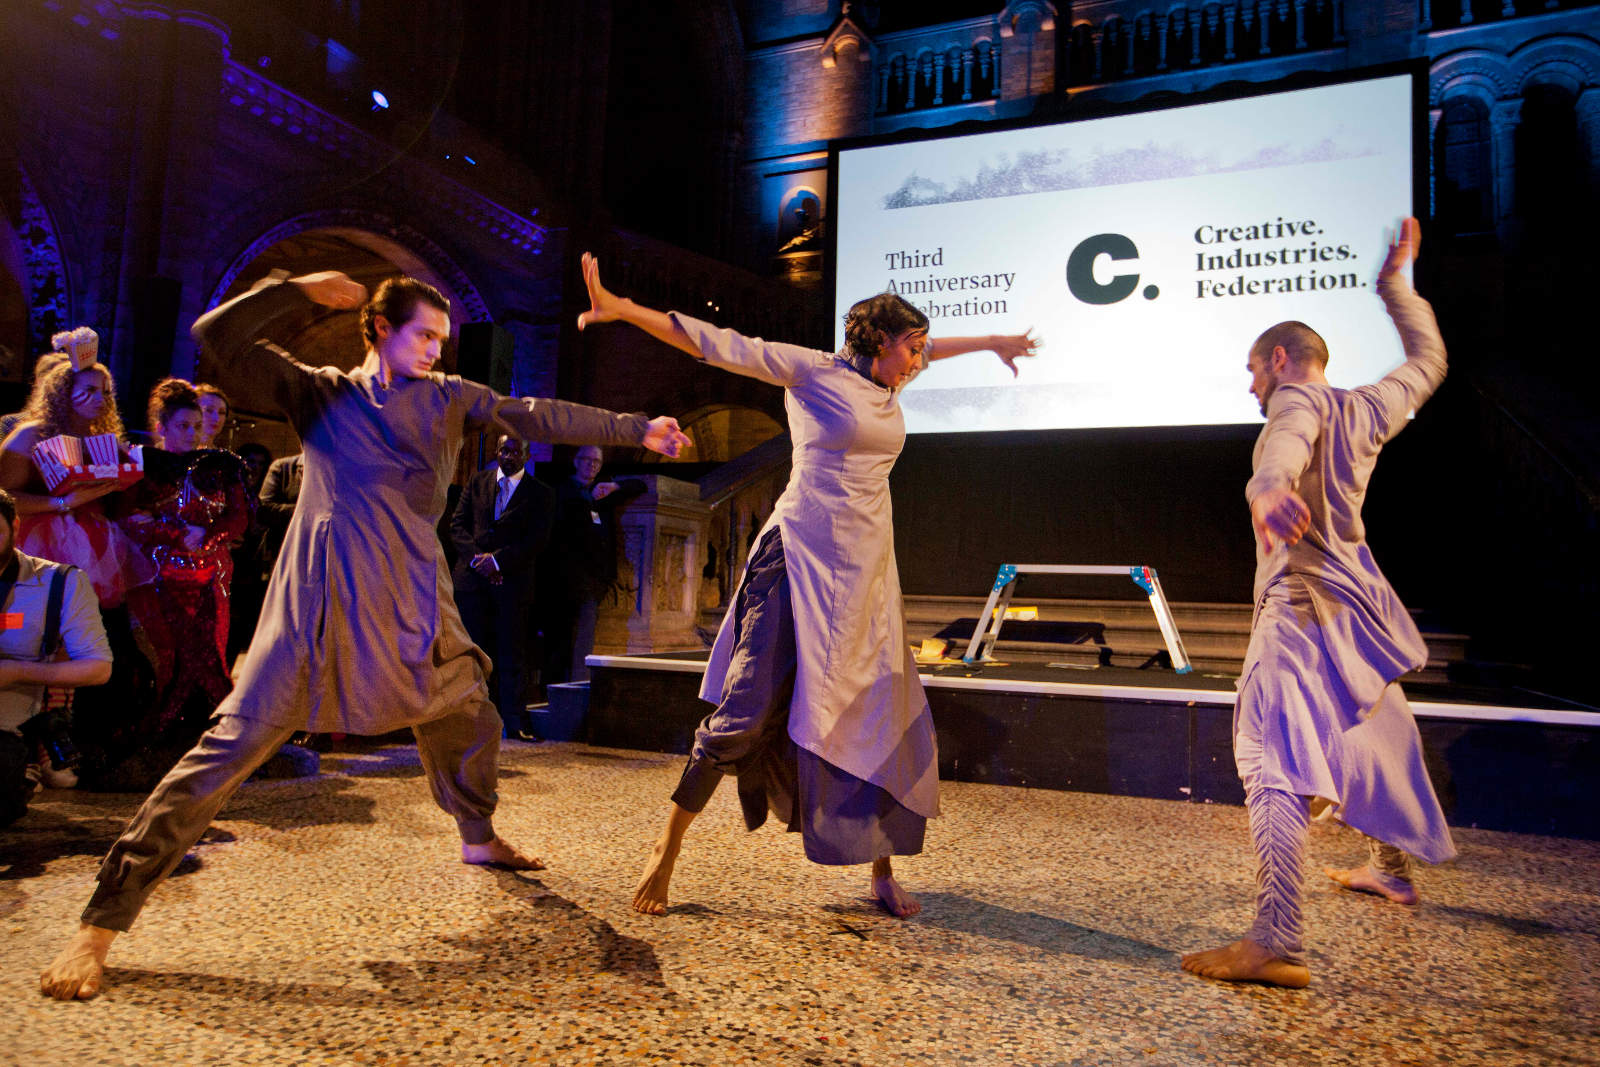 Federation Third Anniversary Celebration at Natural History Museum